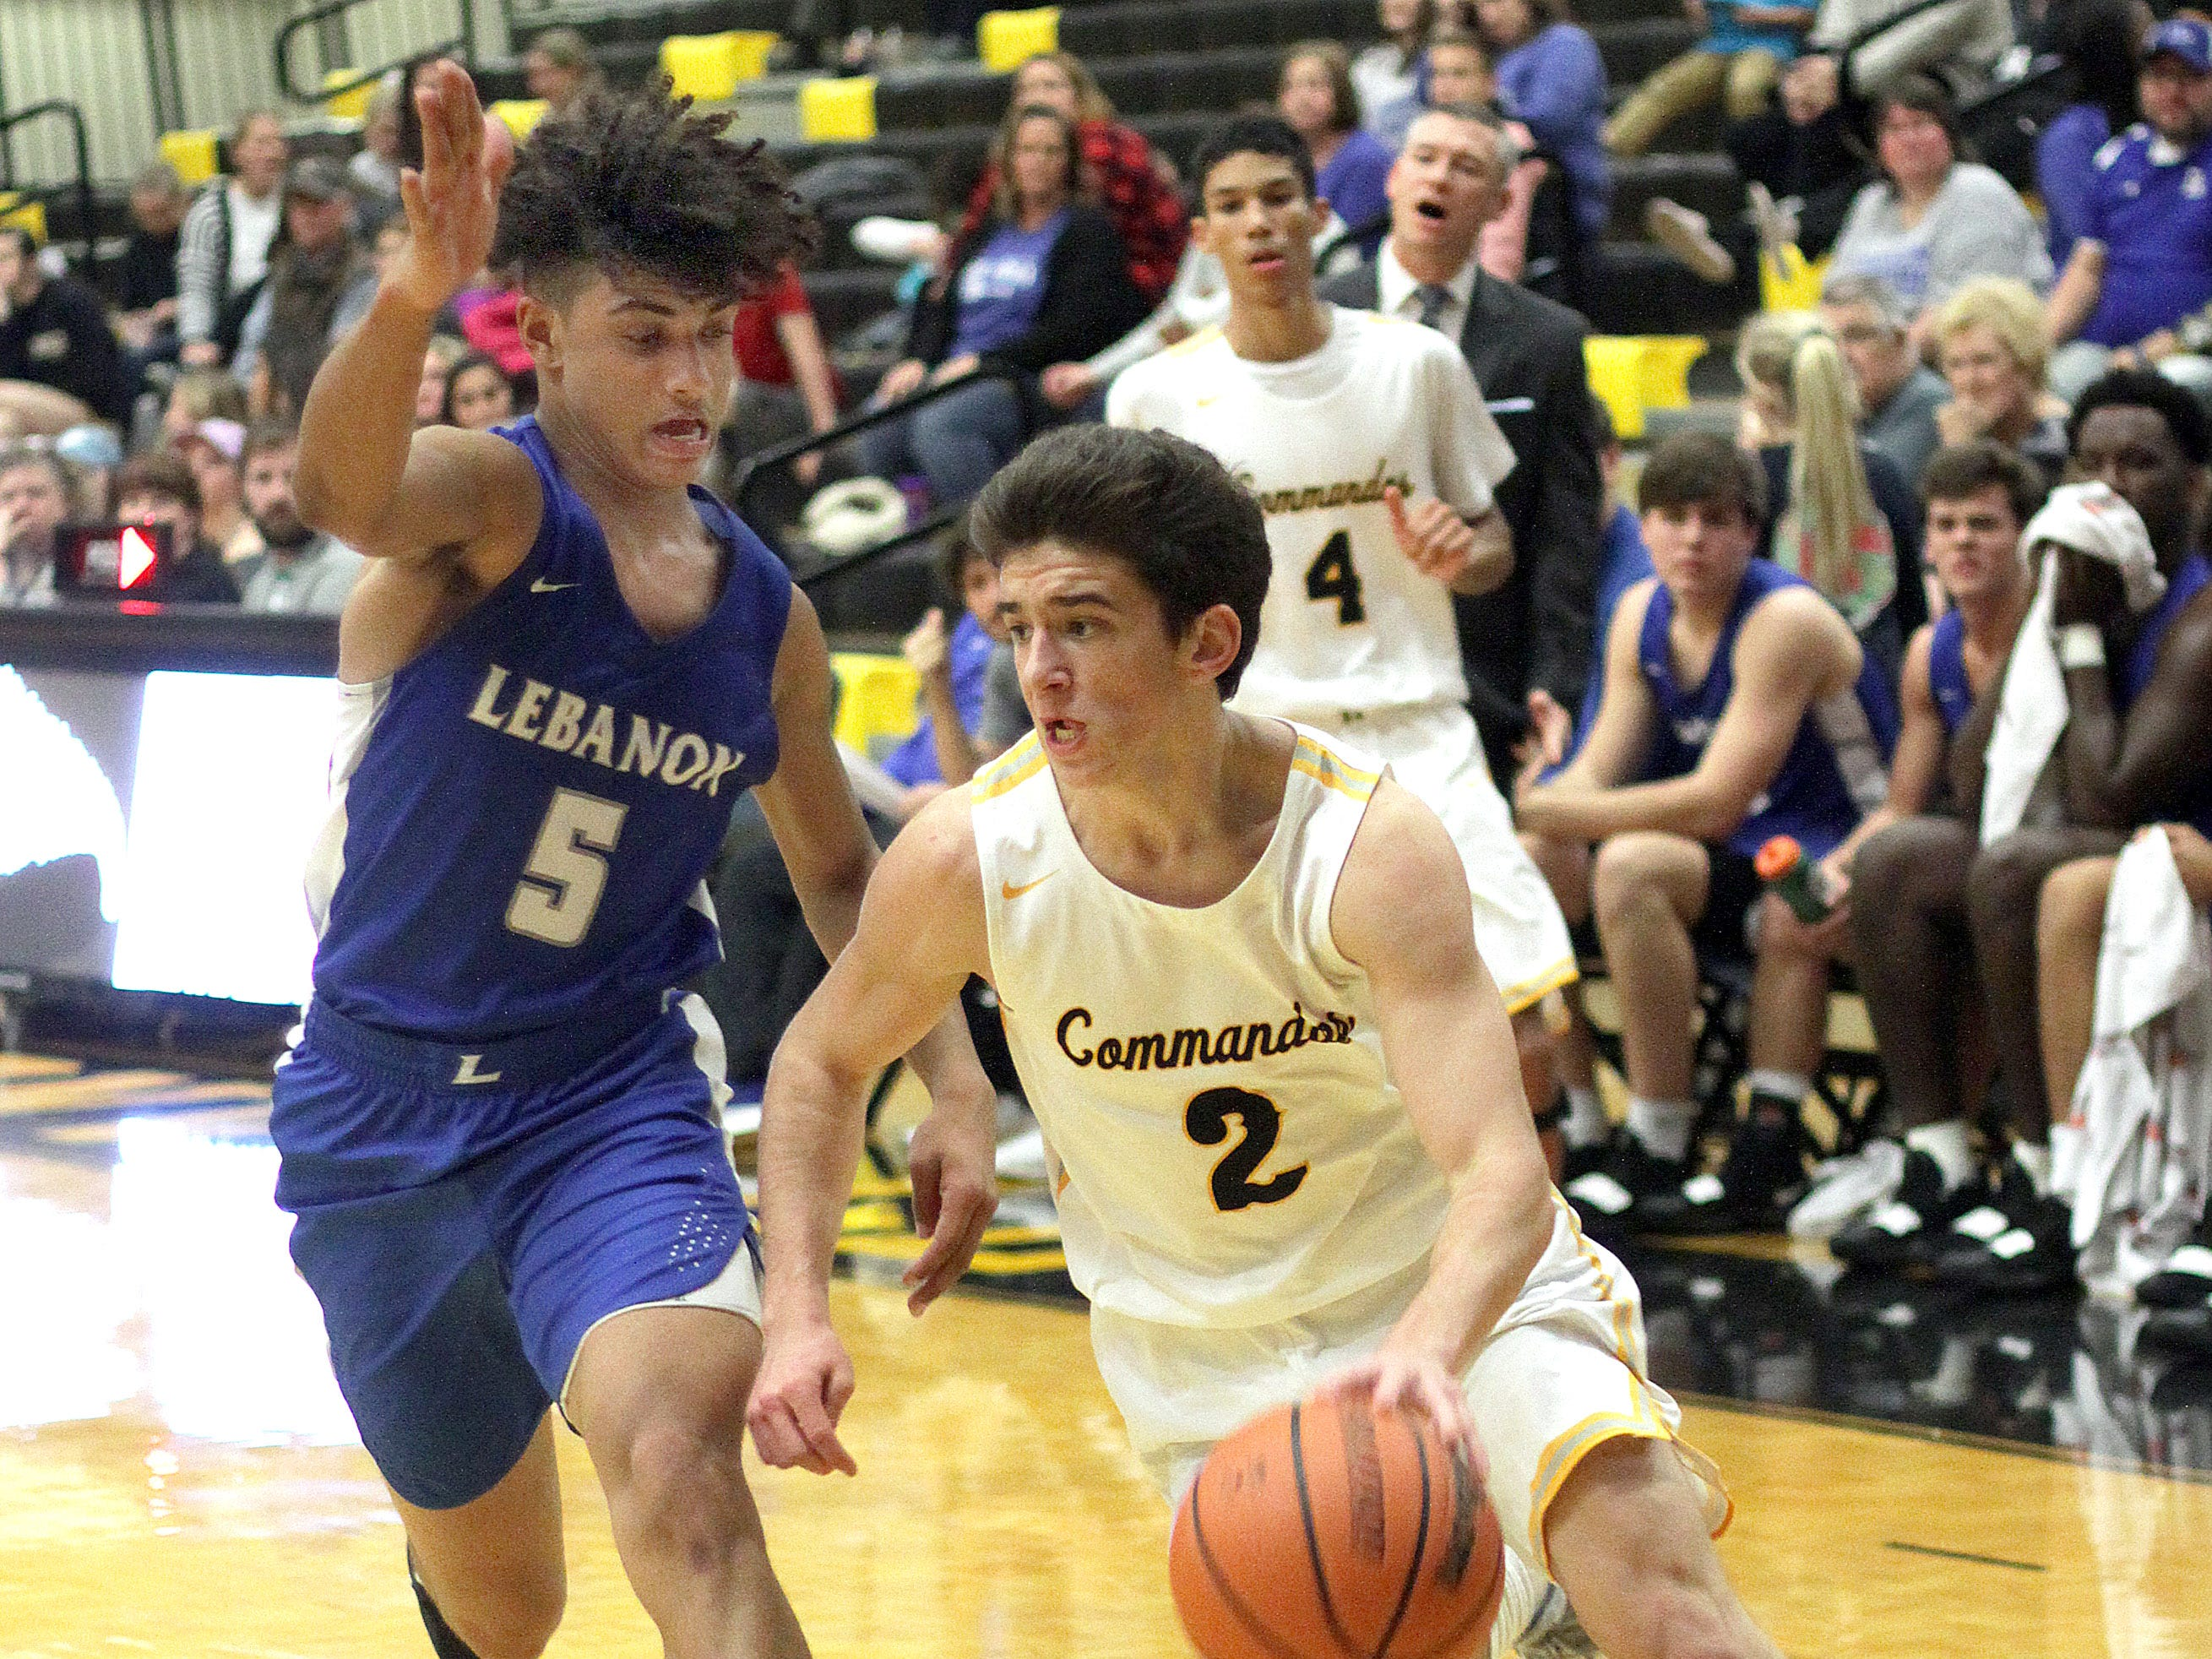 Hendersonville's Grant Long drives against Lebanon's Jeremiah Hastings on Tuesday, December 11, 2018.